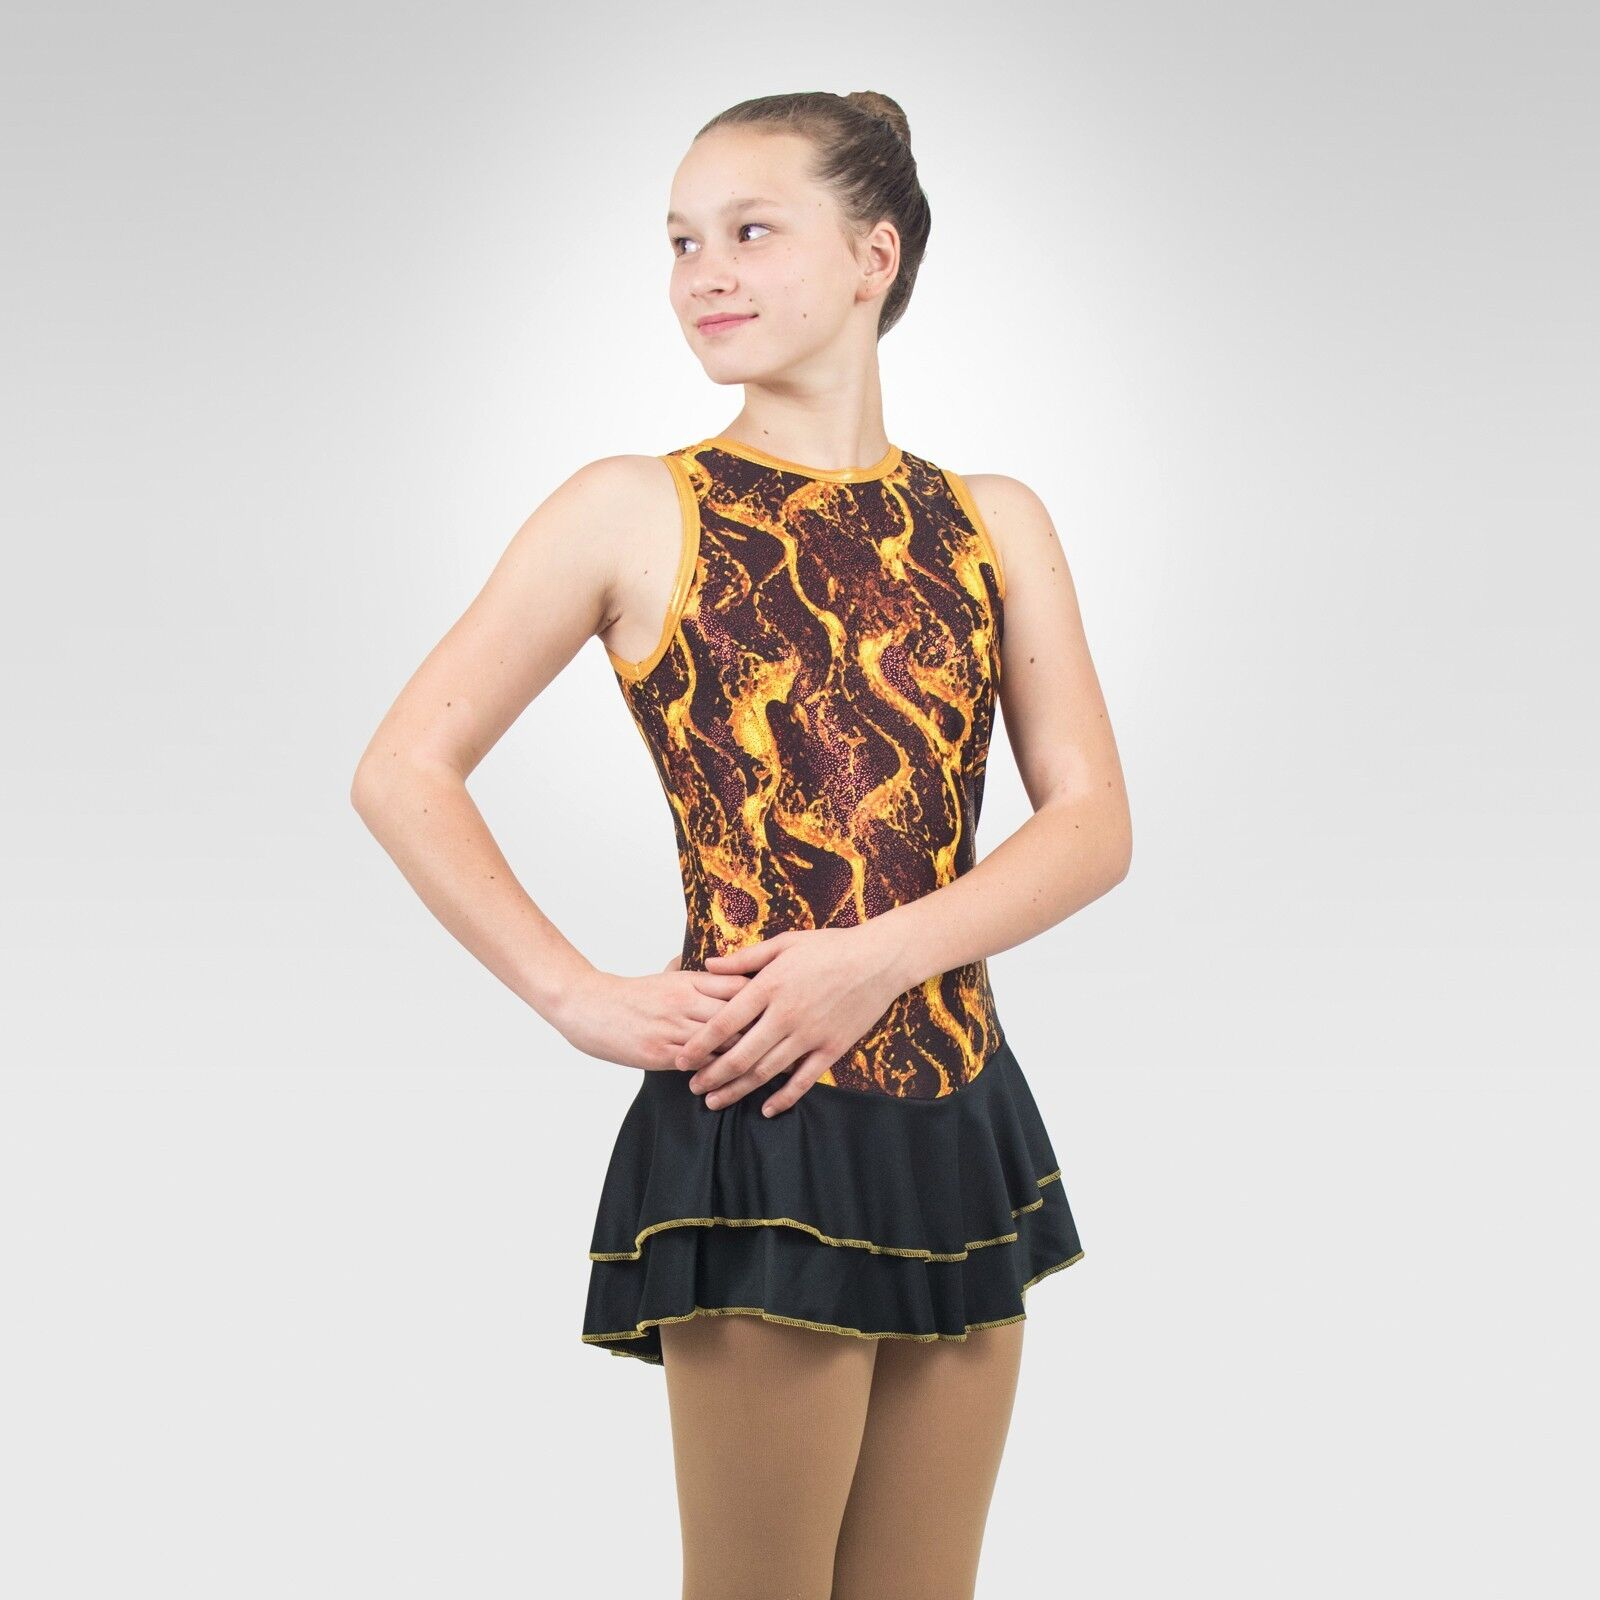 Ice Skating Figure Skating  Dress size size size XSMALL adult multi-color print 398873